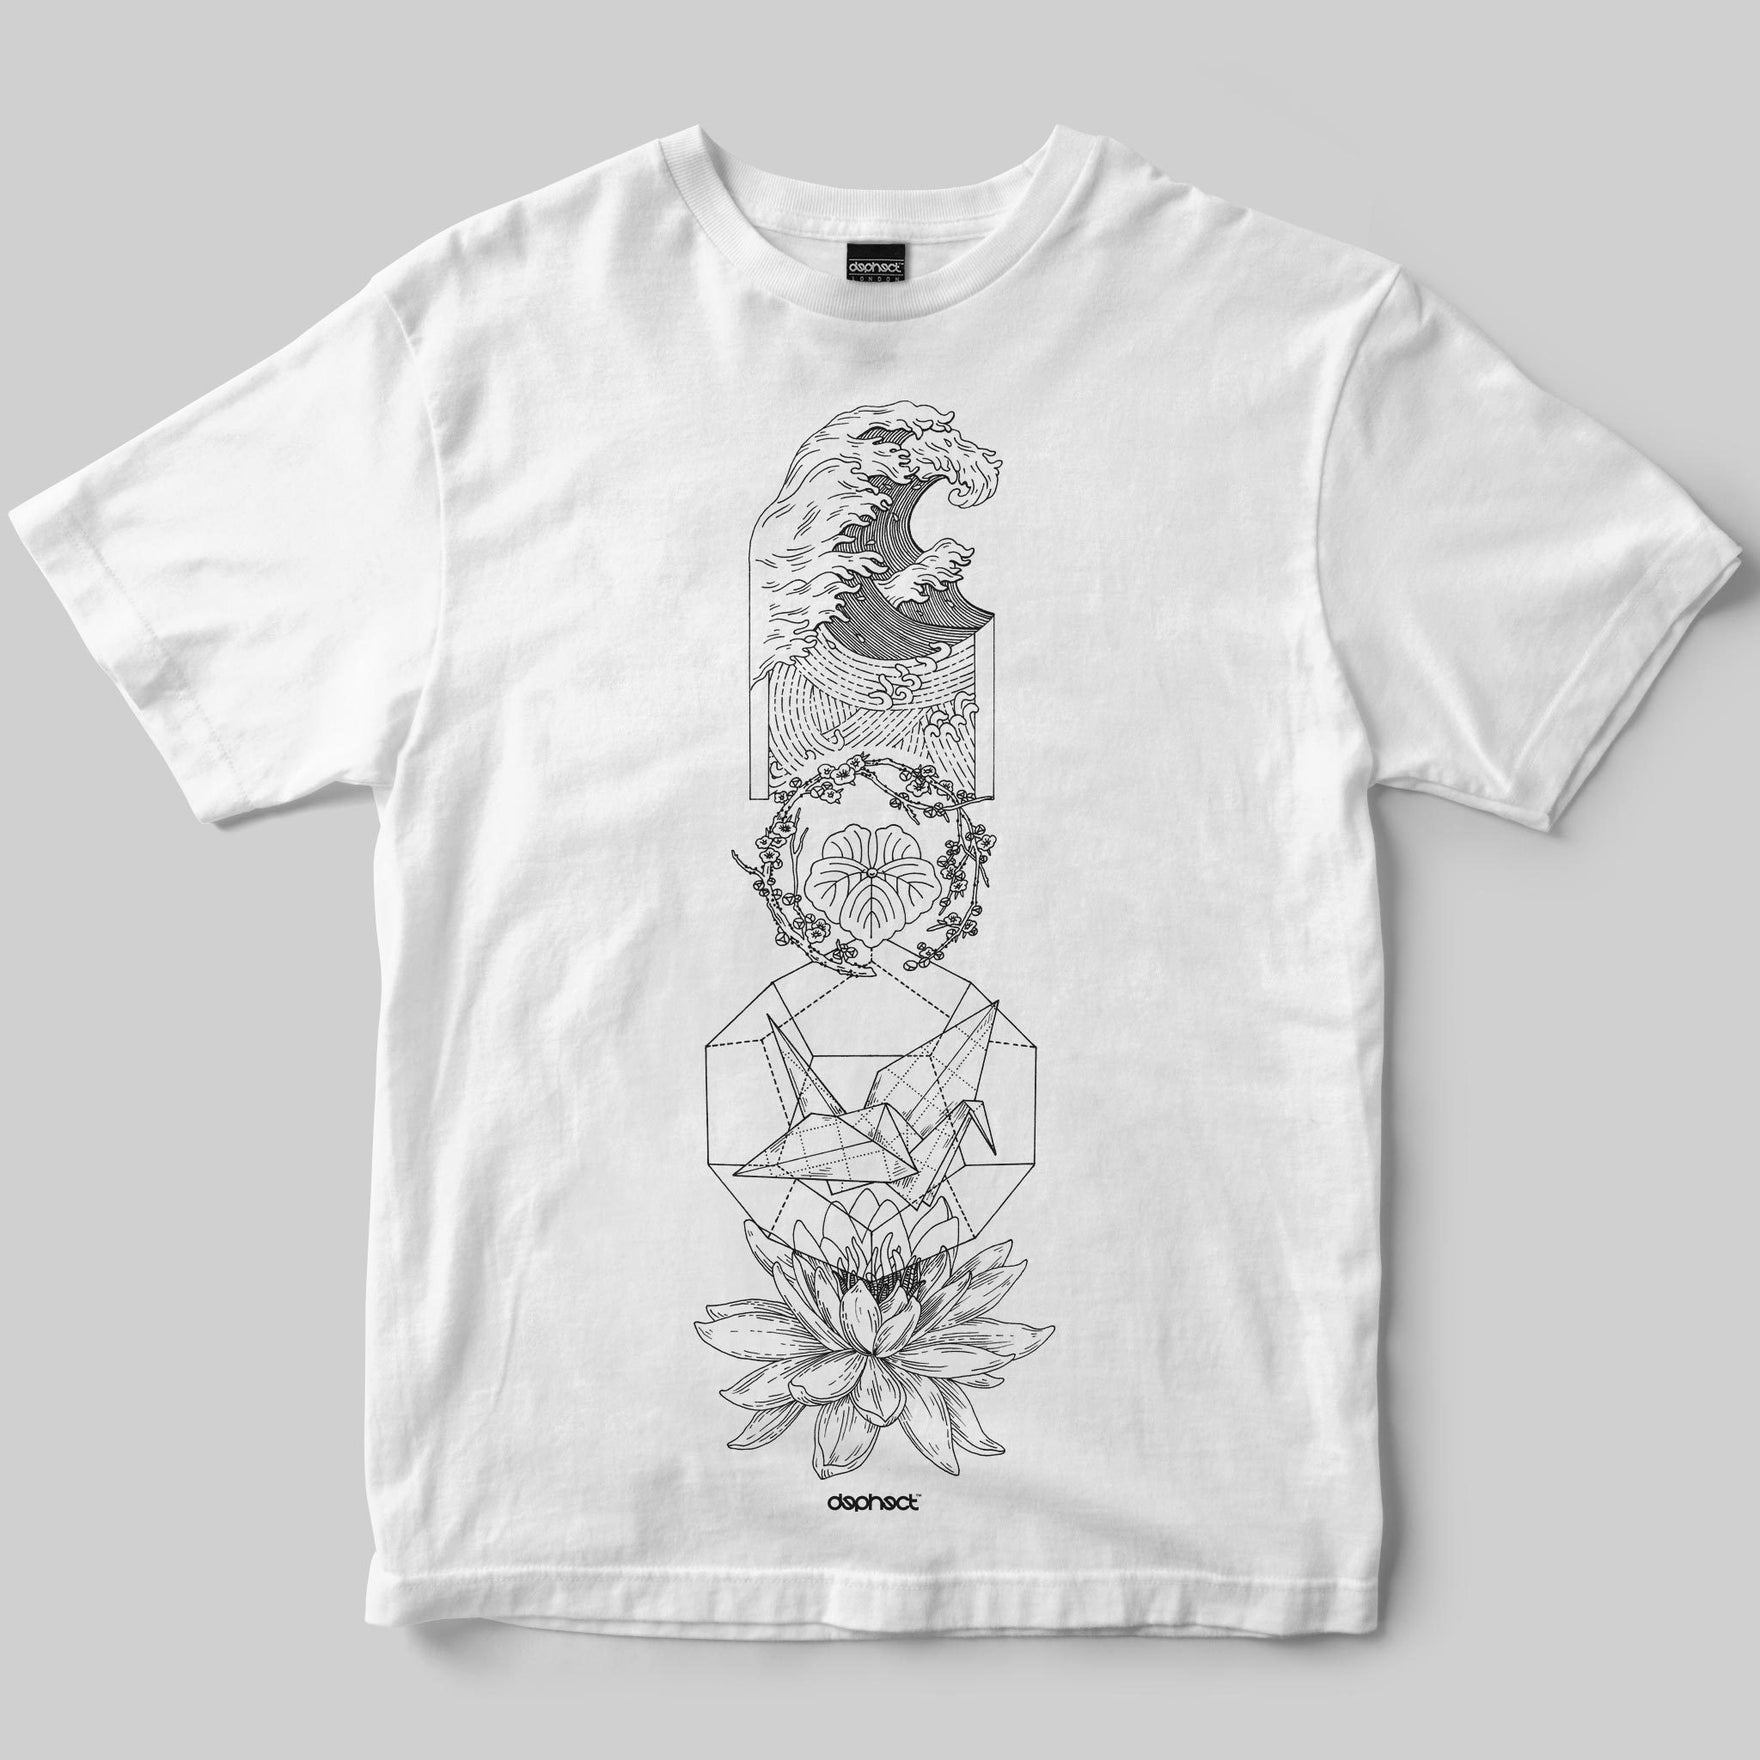 Origami T-Shirt / White / by Poppy Mili